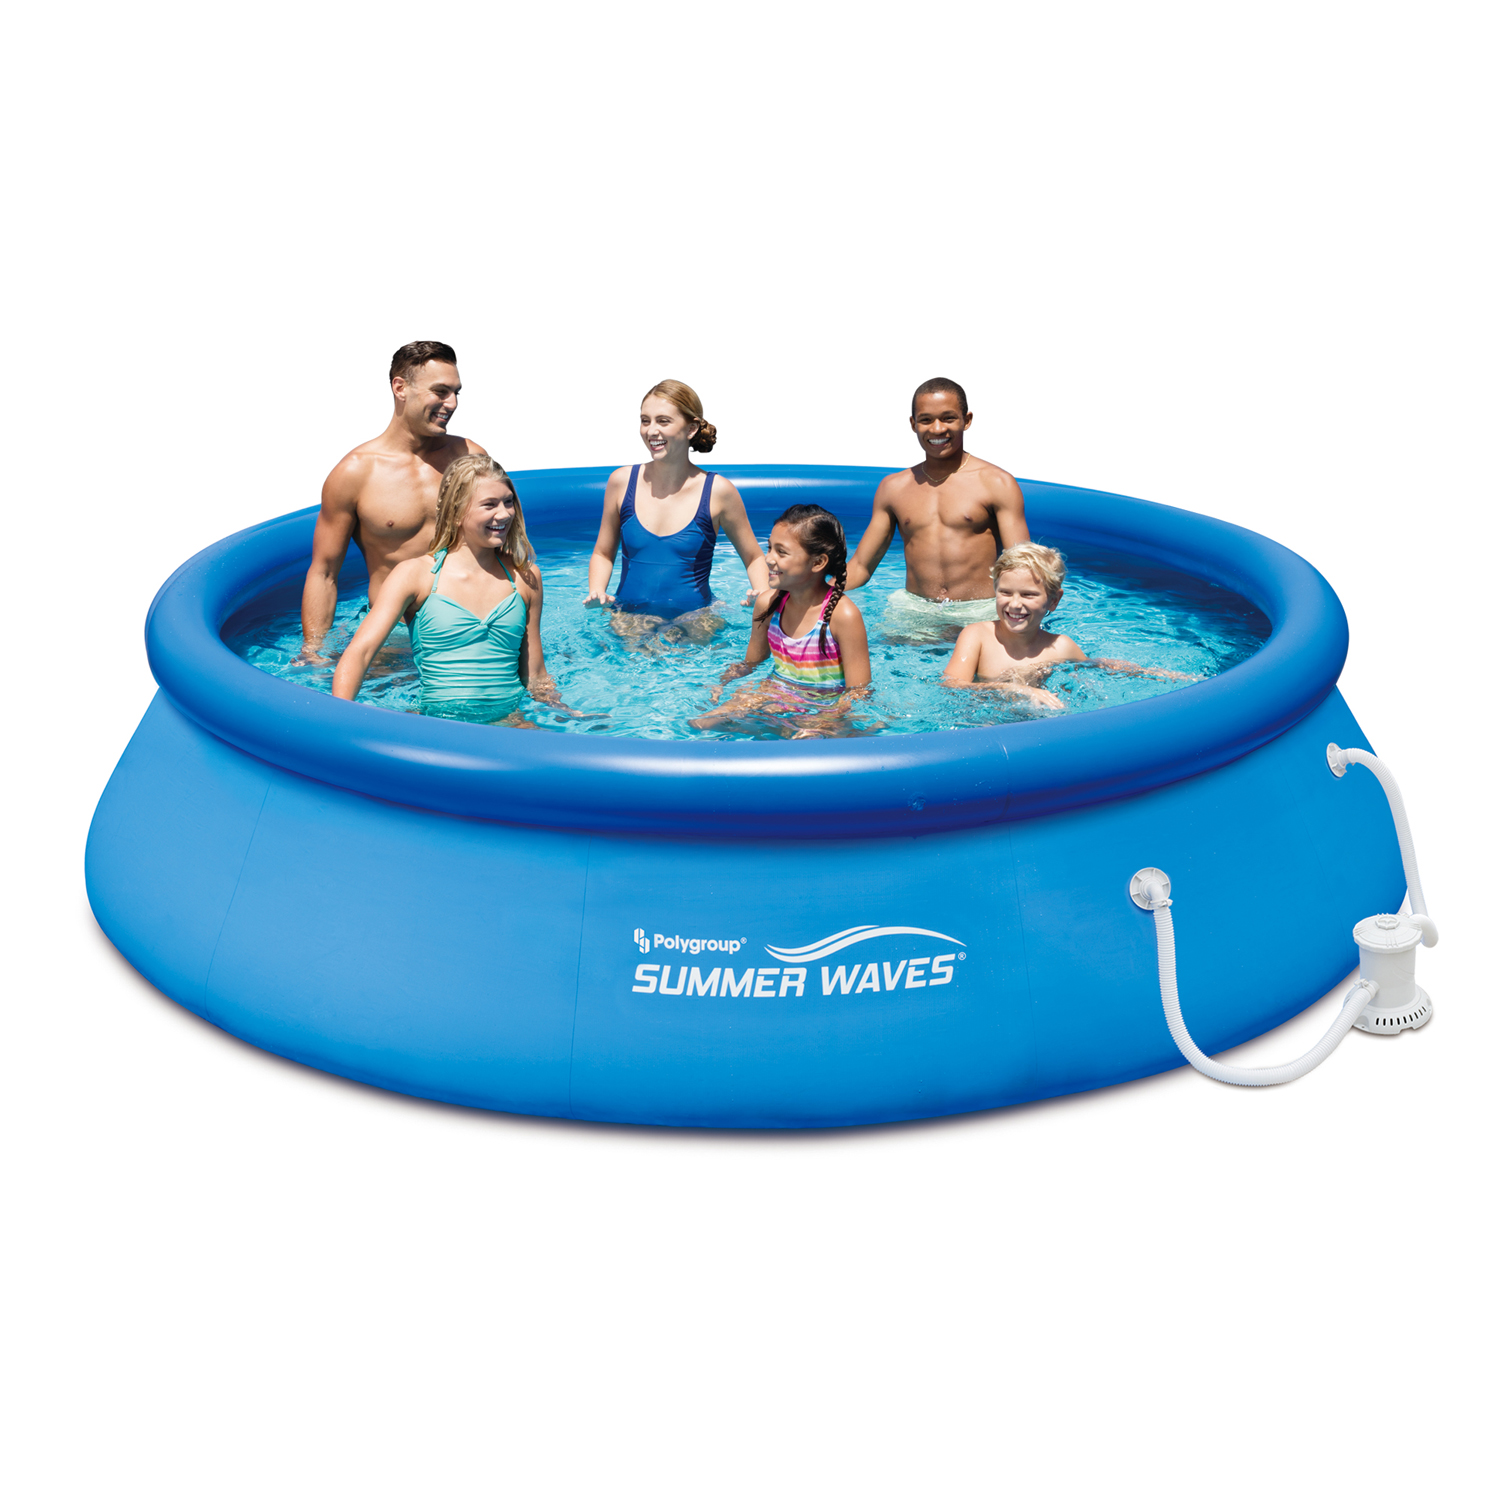 "Summer Waves 12' x 30"" Quick Set Above Ground Swimming Pool with Filter Pump System"